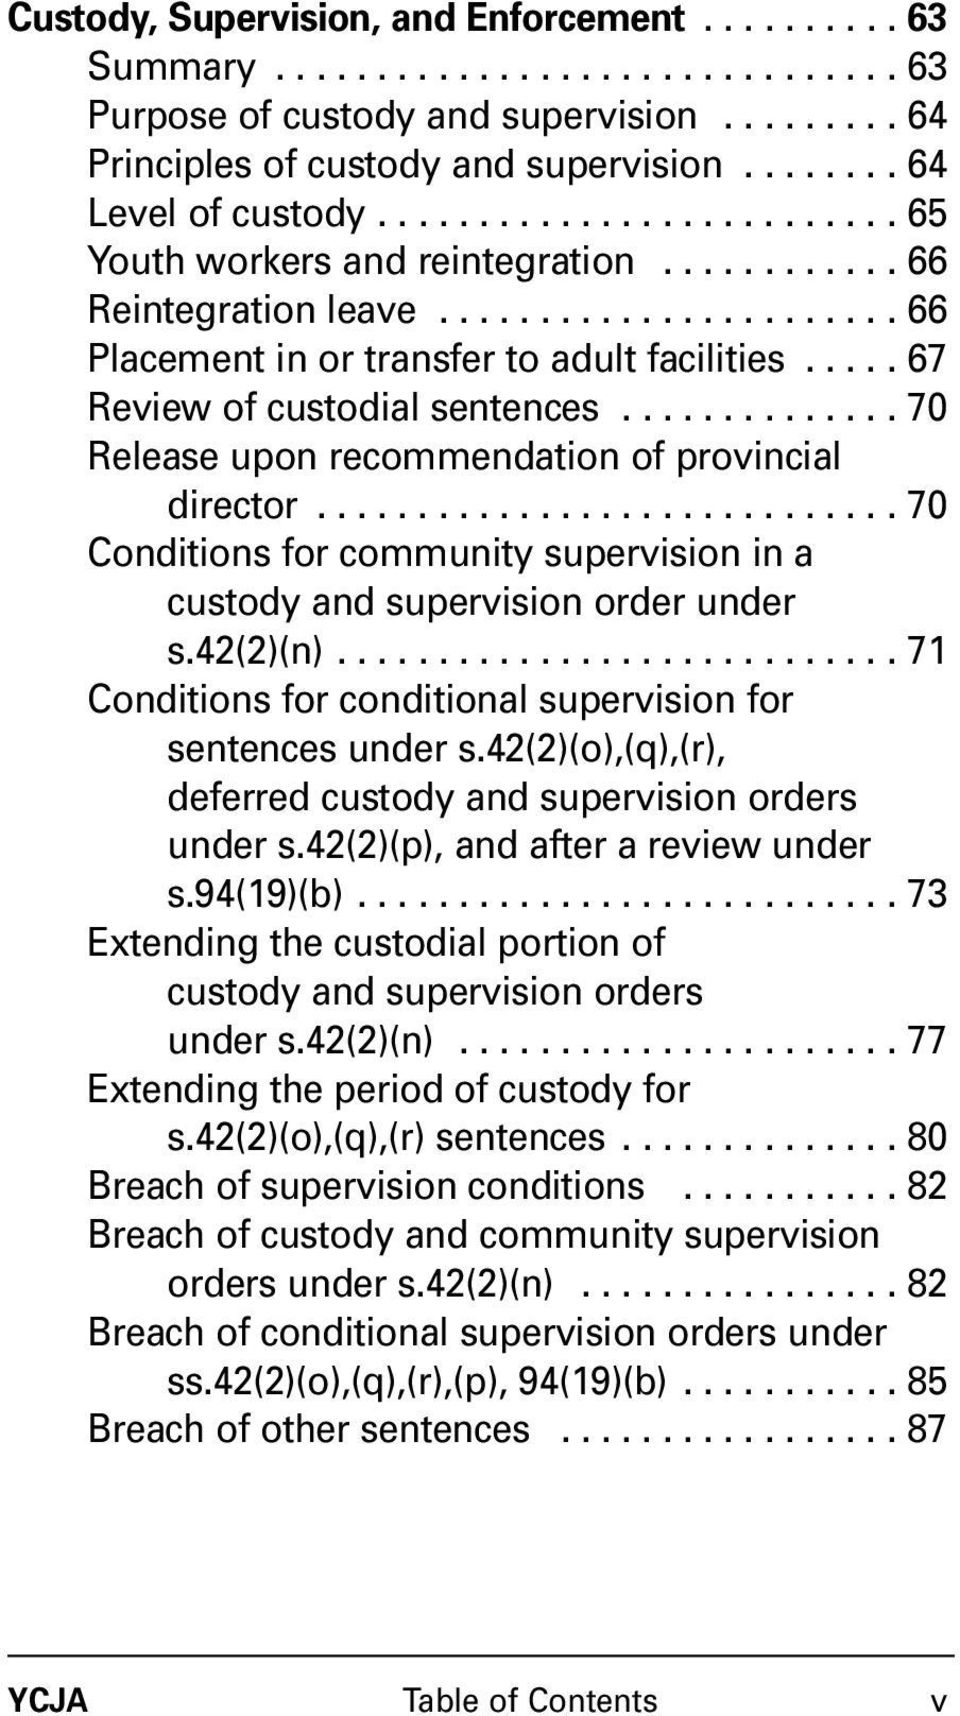 .... 67 Review of custodial sentences.............. 70 Release upon recommendation of provincial director............................. 70 Conditions for community supervision in a custody and supervision order under s.